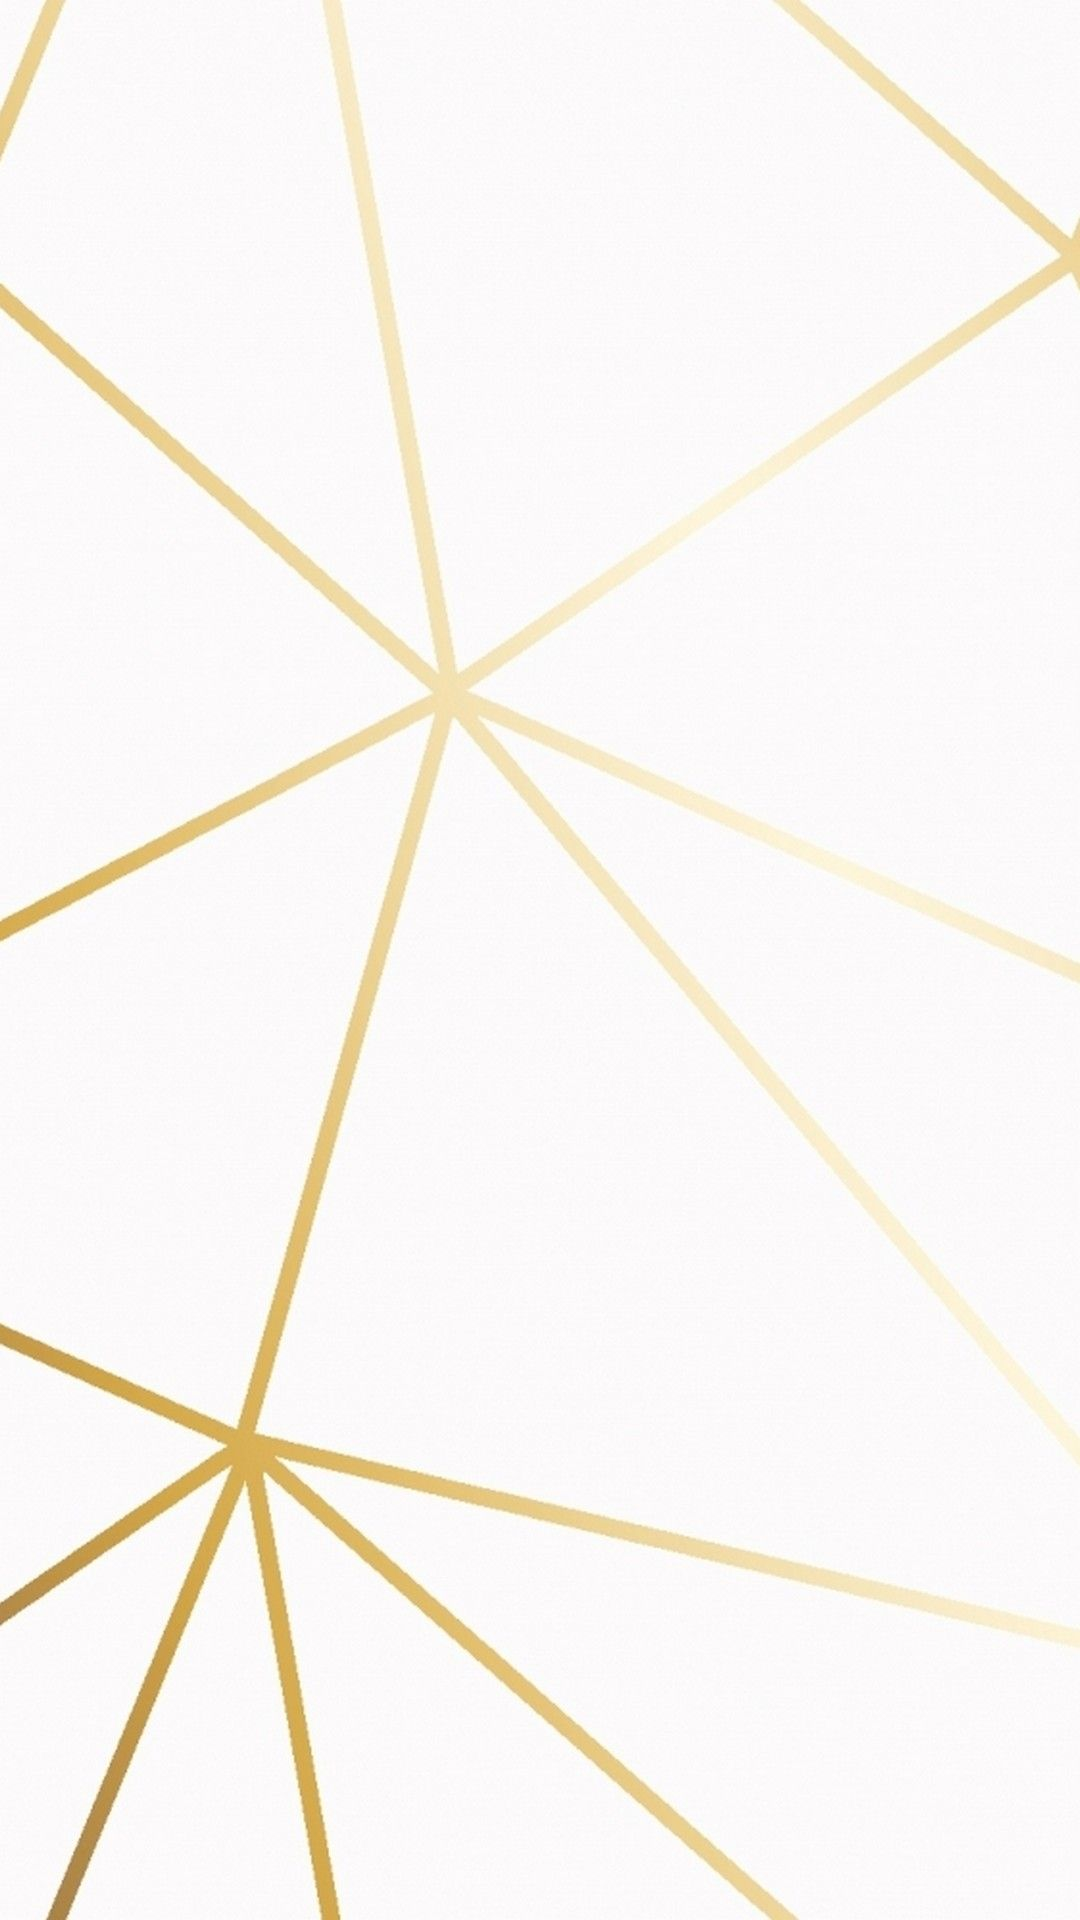 white and gold wallpaper White and Gold iPhone Wallpaper | iPhoneWallpapers | Pinterest  white and gold wallpaper